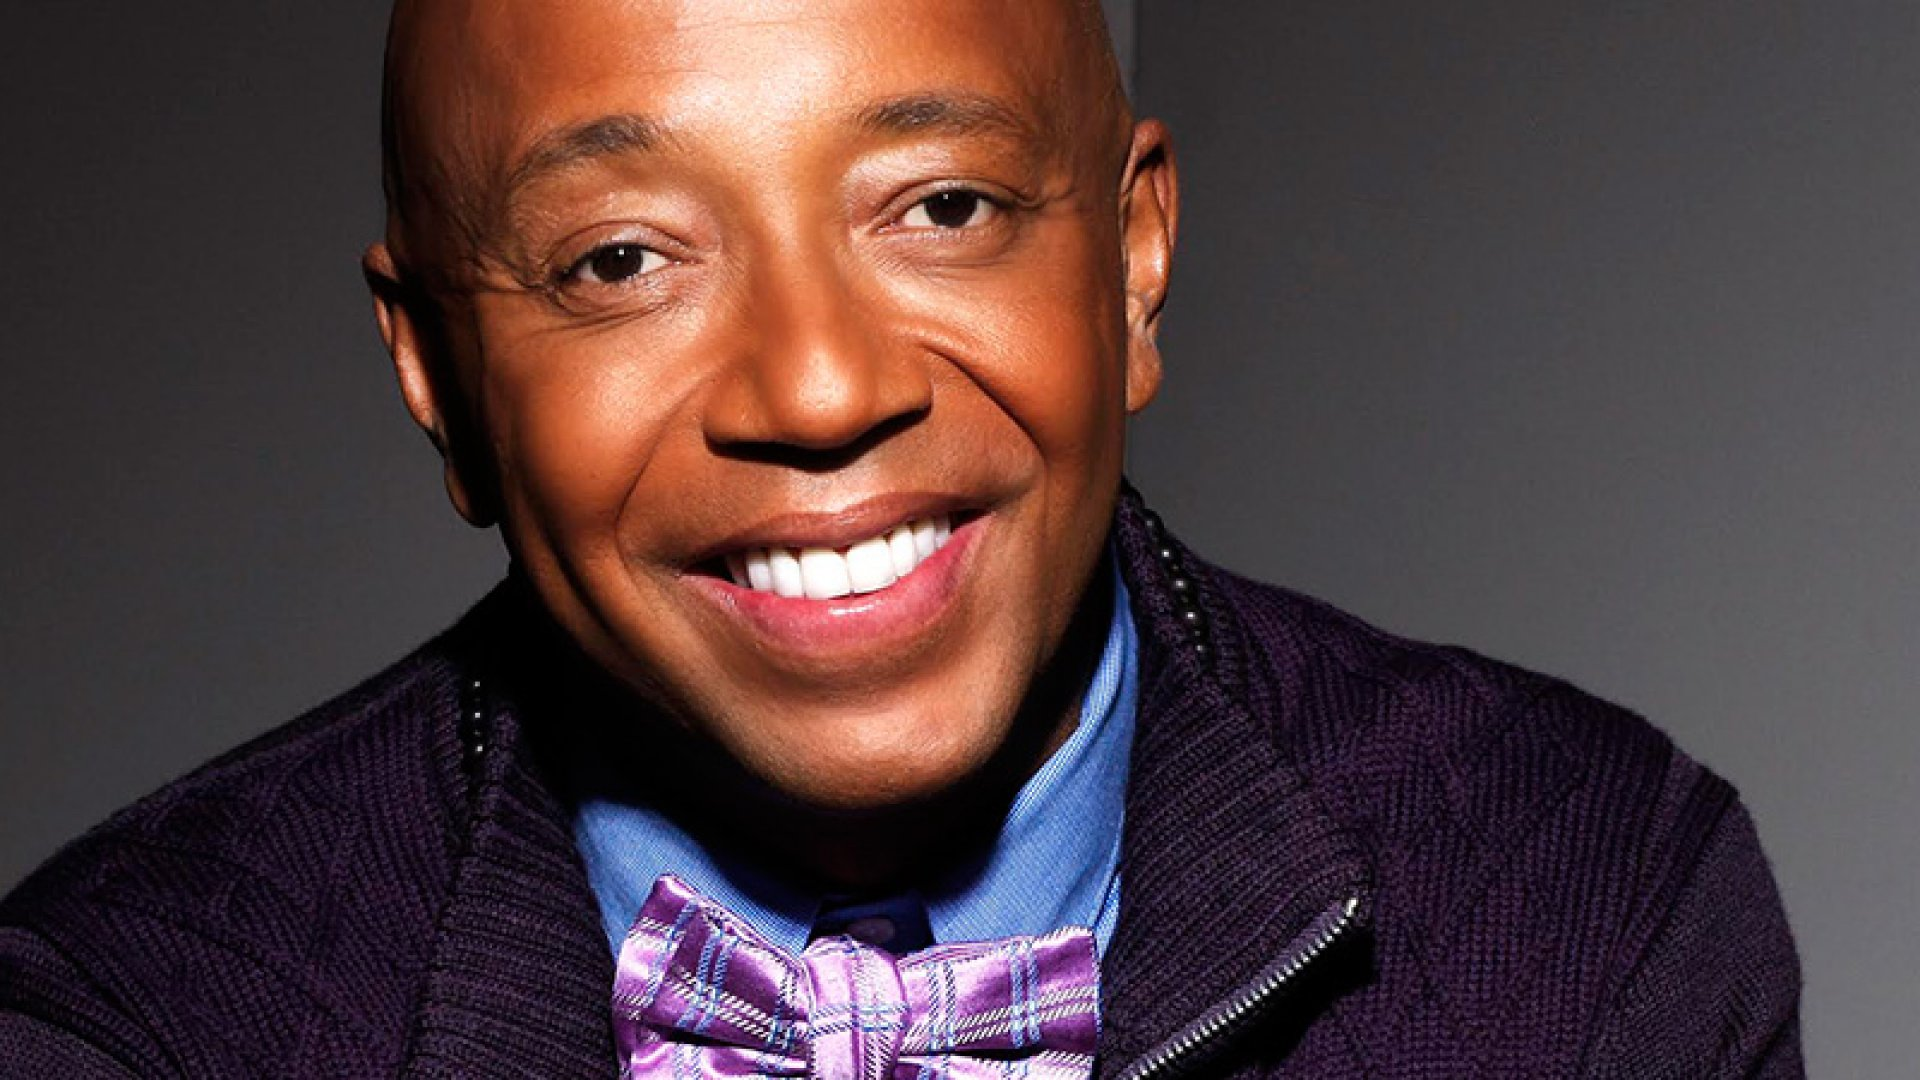 How a Little Music Startup Scored Top Billing at Russell Simmons's Fashion Show